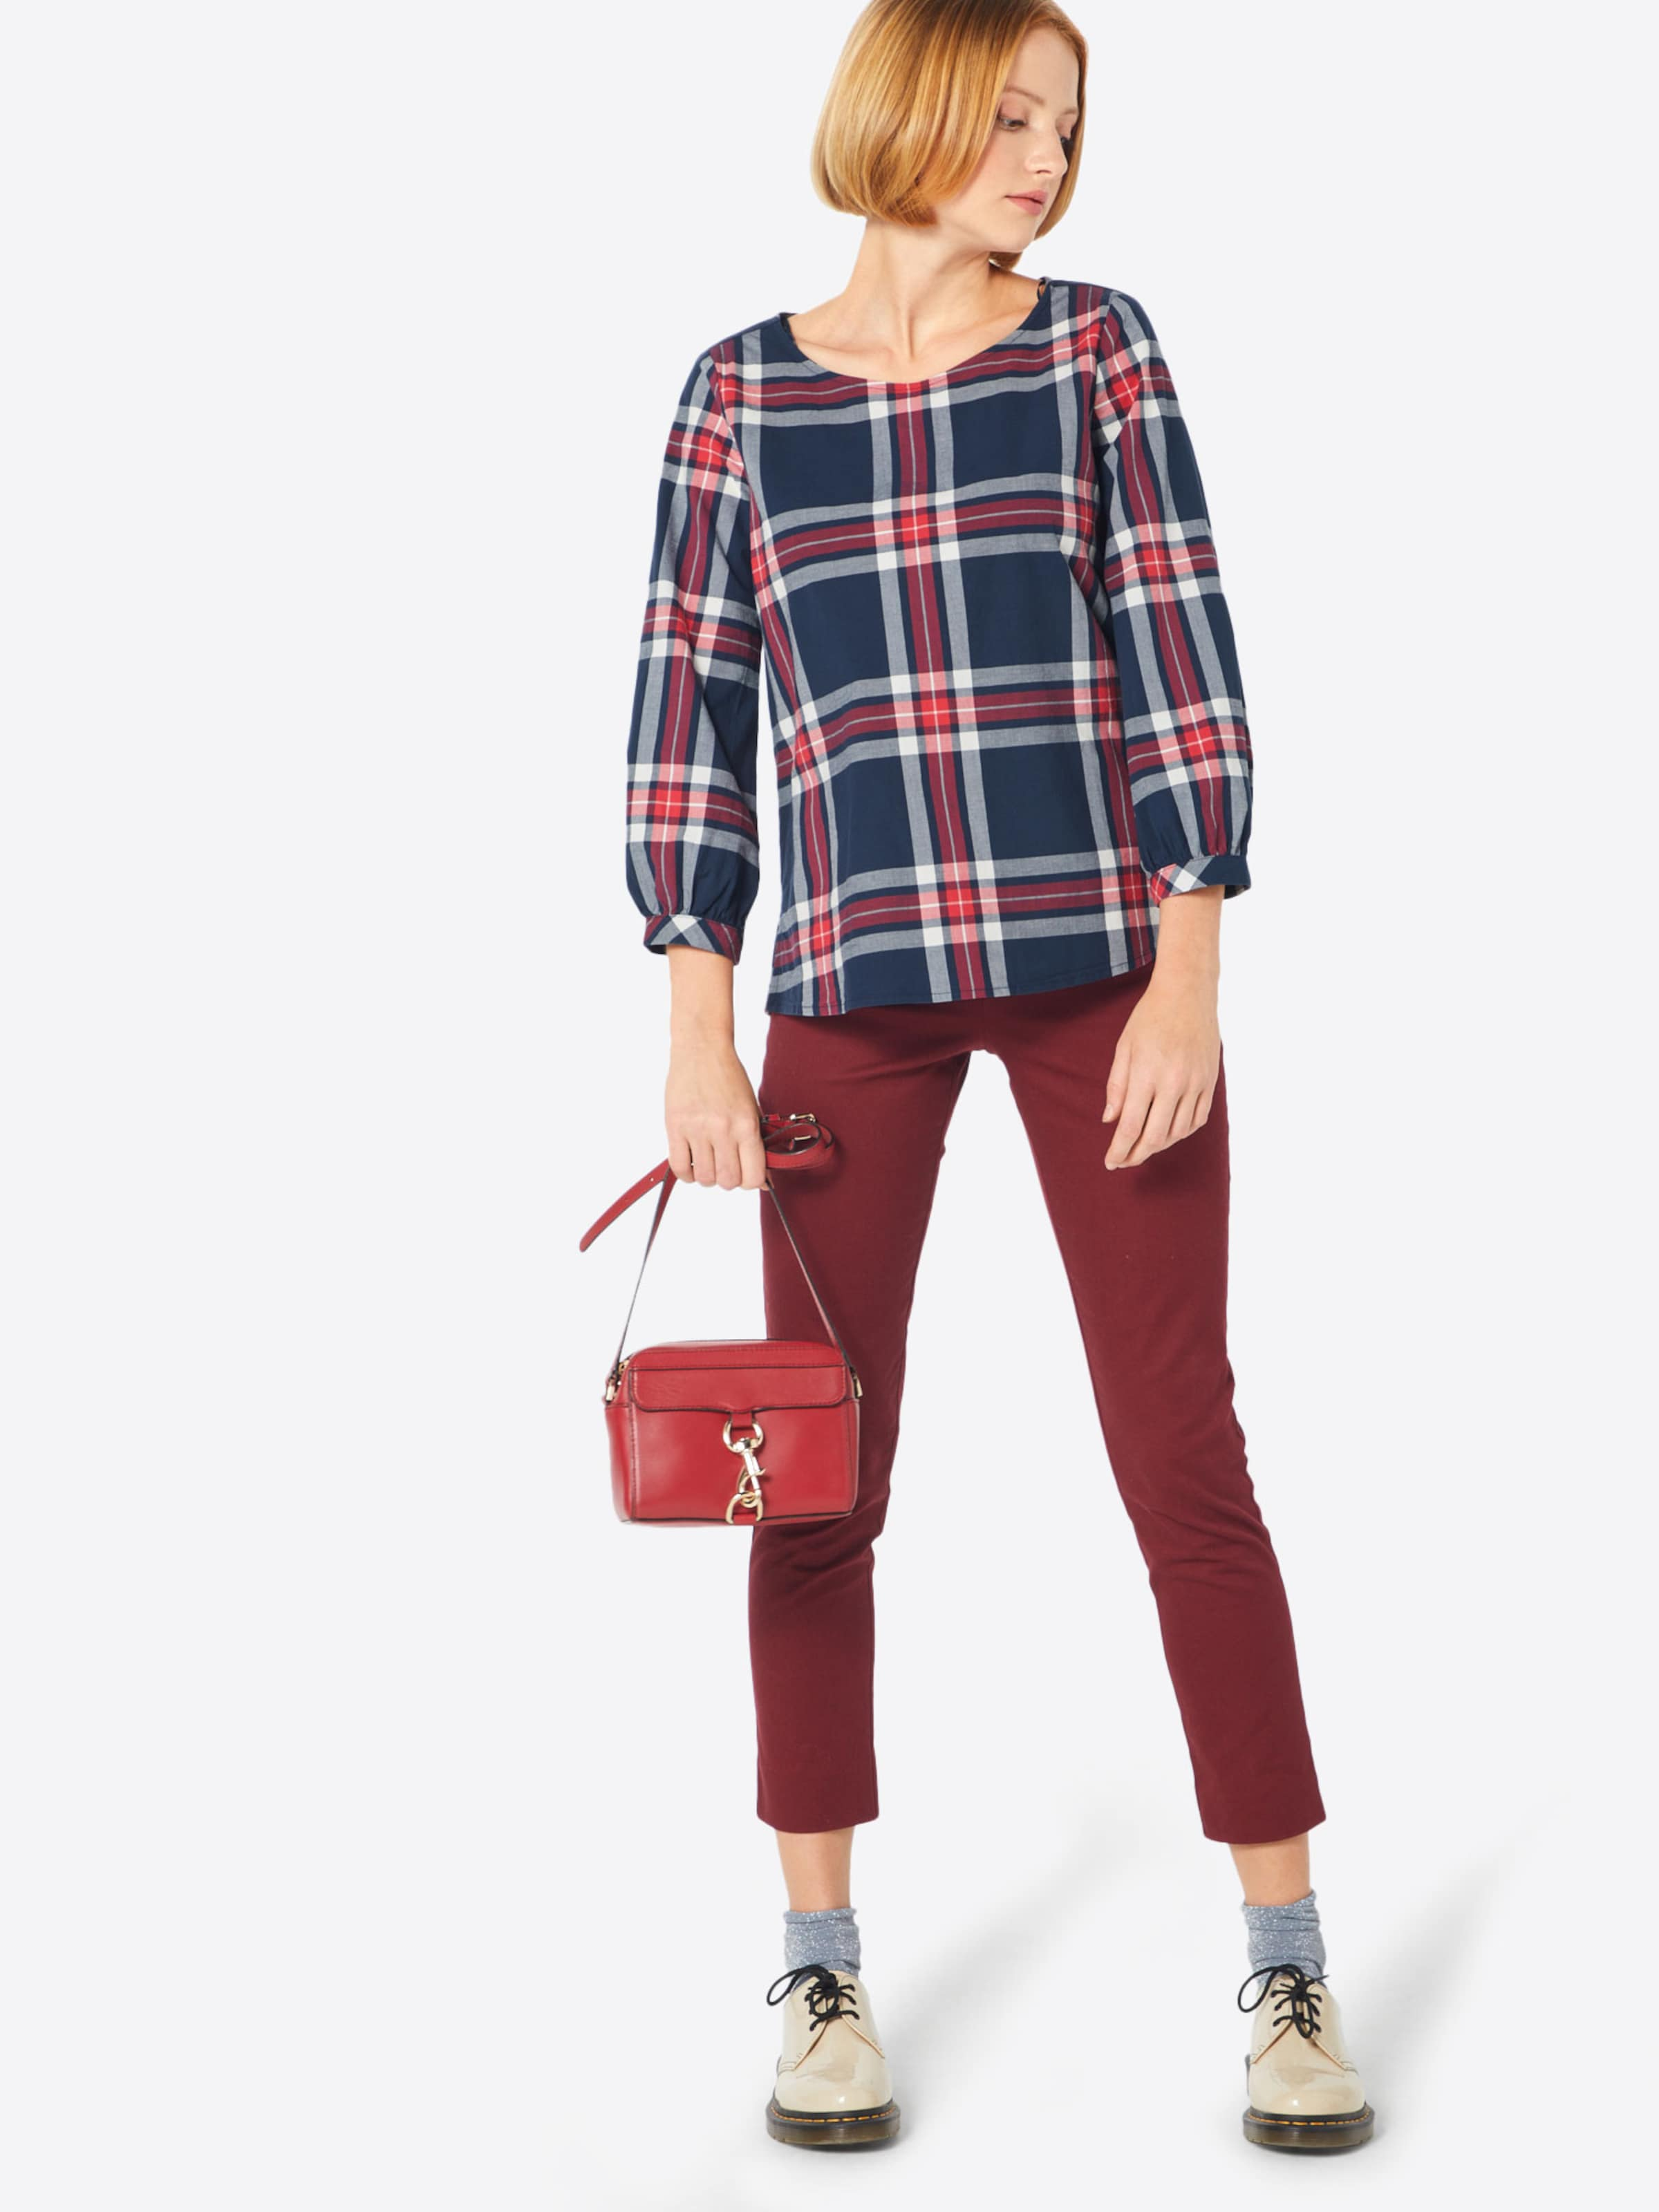 Blouse NavyRood Tom Tailor In Wit JTKlF1c3u5